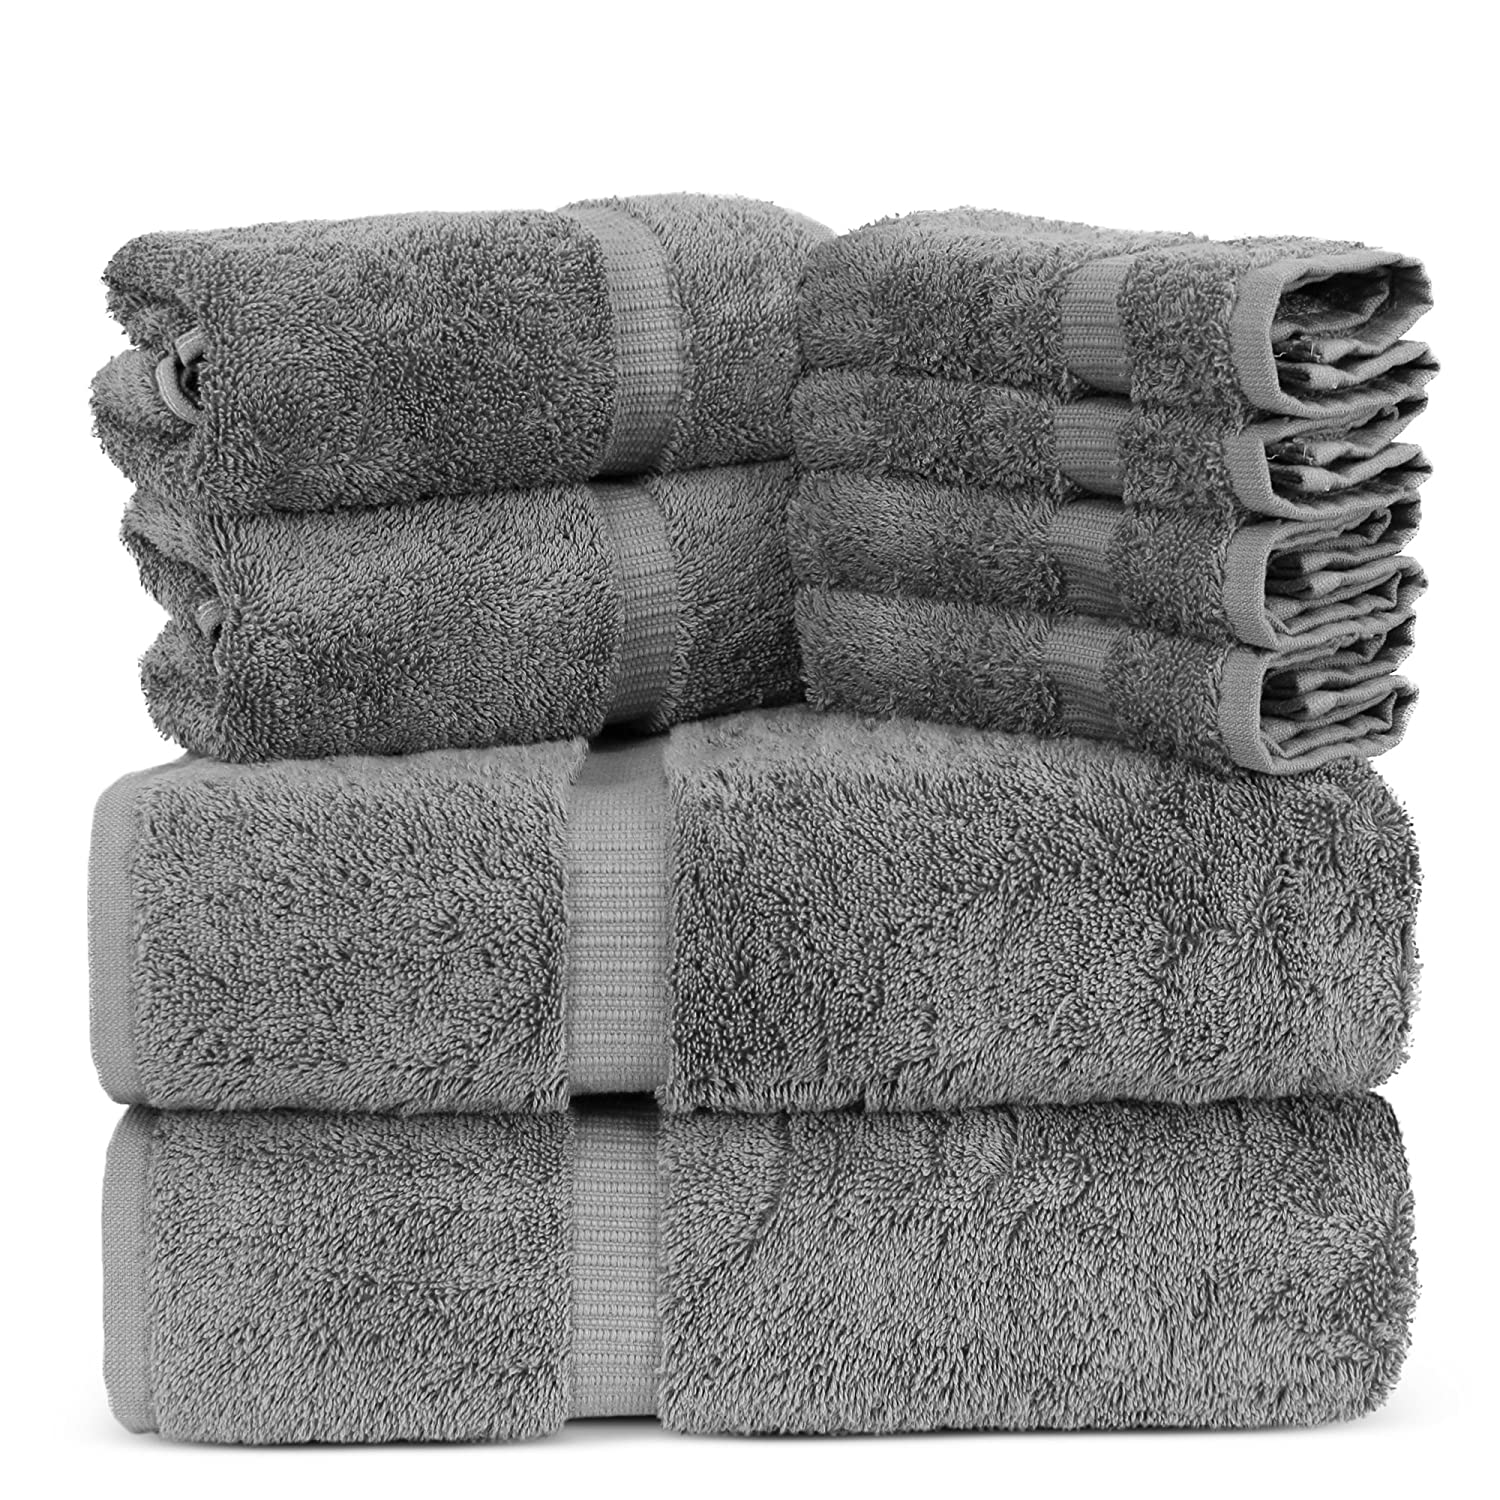 Towel Bazaar Luxury Hotel and Spa Quality 100% Premium Turkish Cotton 8 Pieces Eco-Friendly Kitchen and Bathroom Towel Set (2 x Bath Towels, 2 x Hand Towels, 4 x Wash Cloths, Pink)